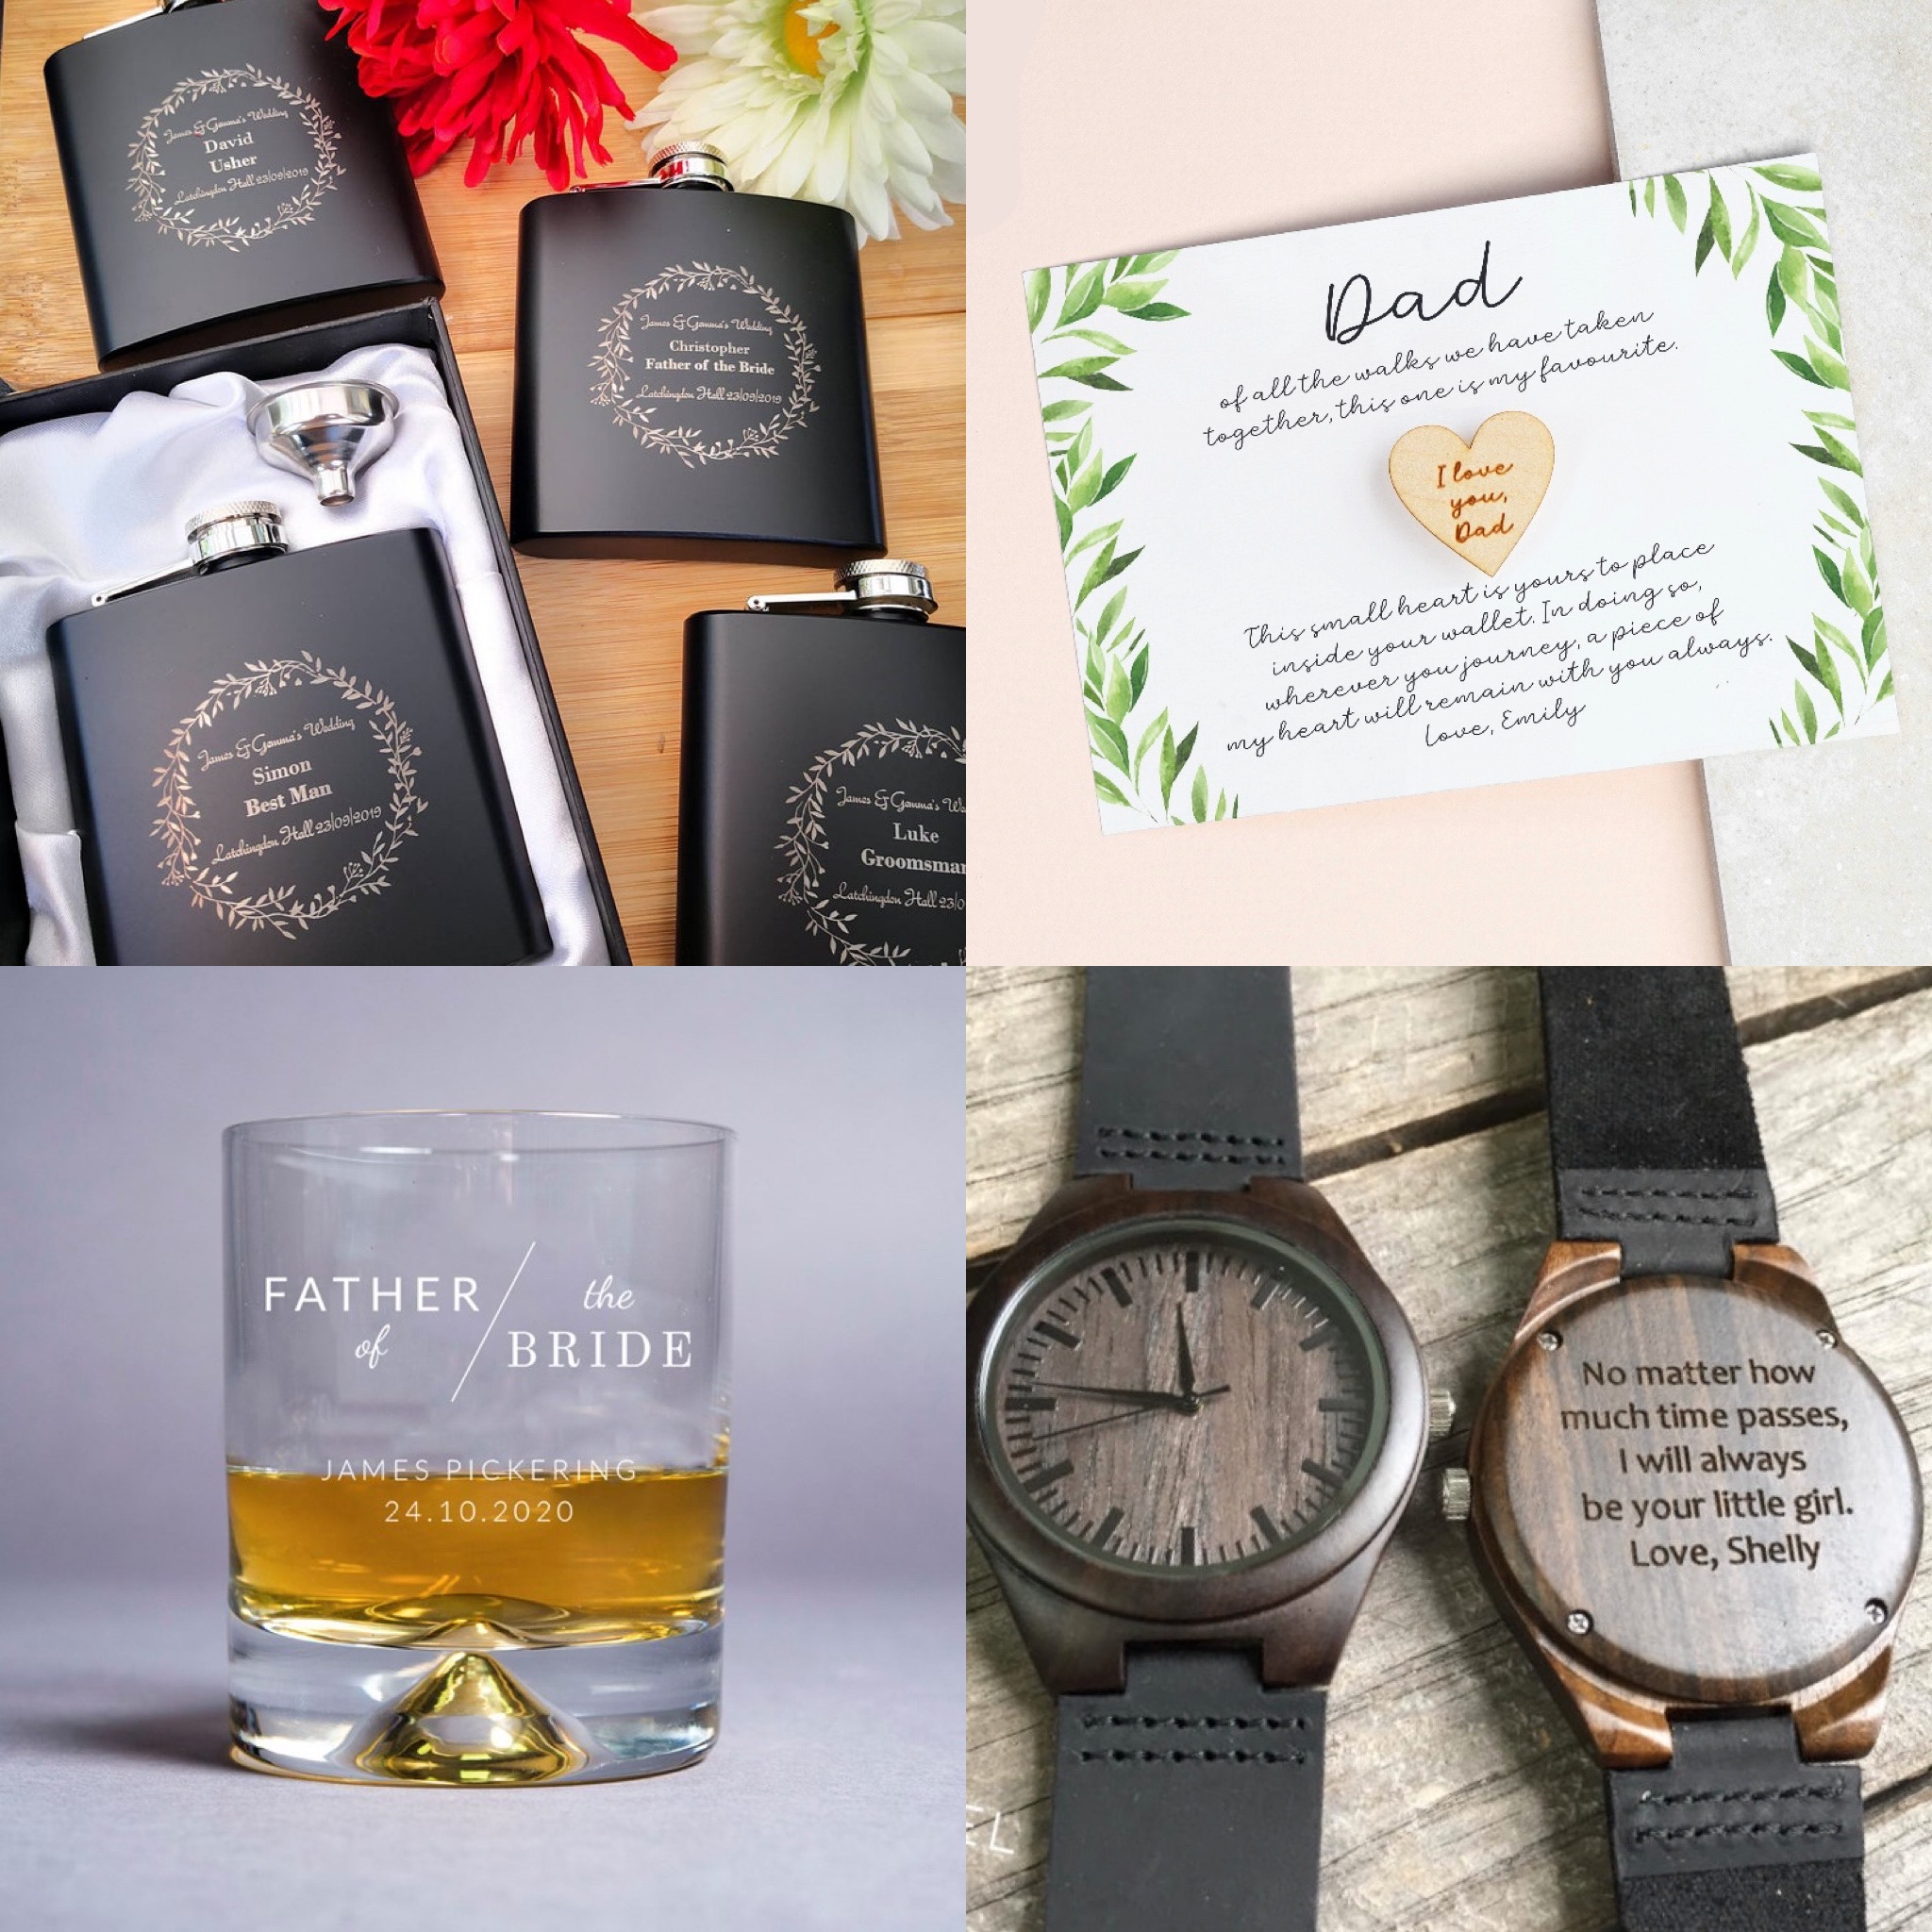 wedding day gifts for the Father of the Bride, A hp flask, a whisky glass and an engraved watch.